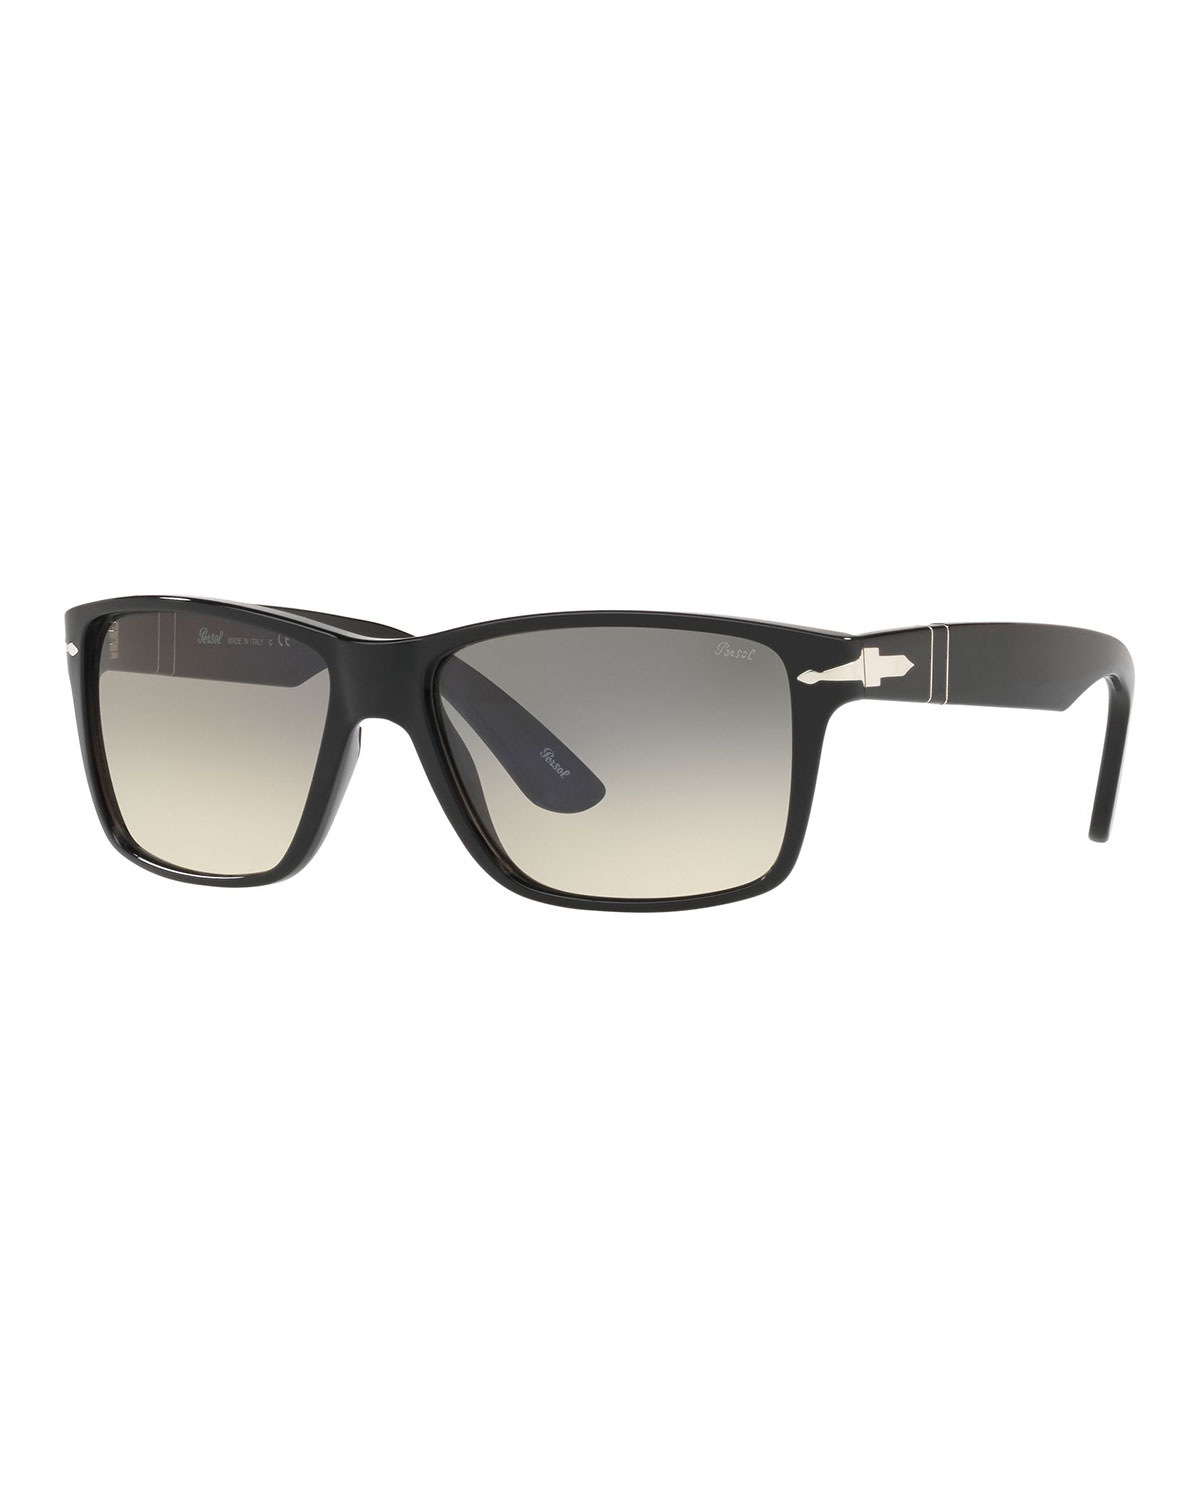 ddc1c2aadd Persol Men s Rectangle Gradient Sunglasses